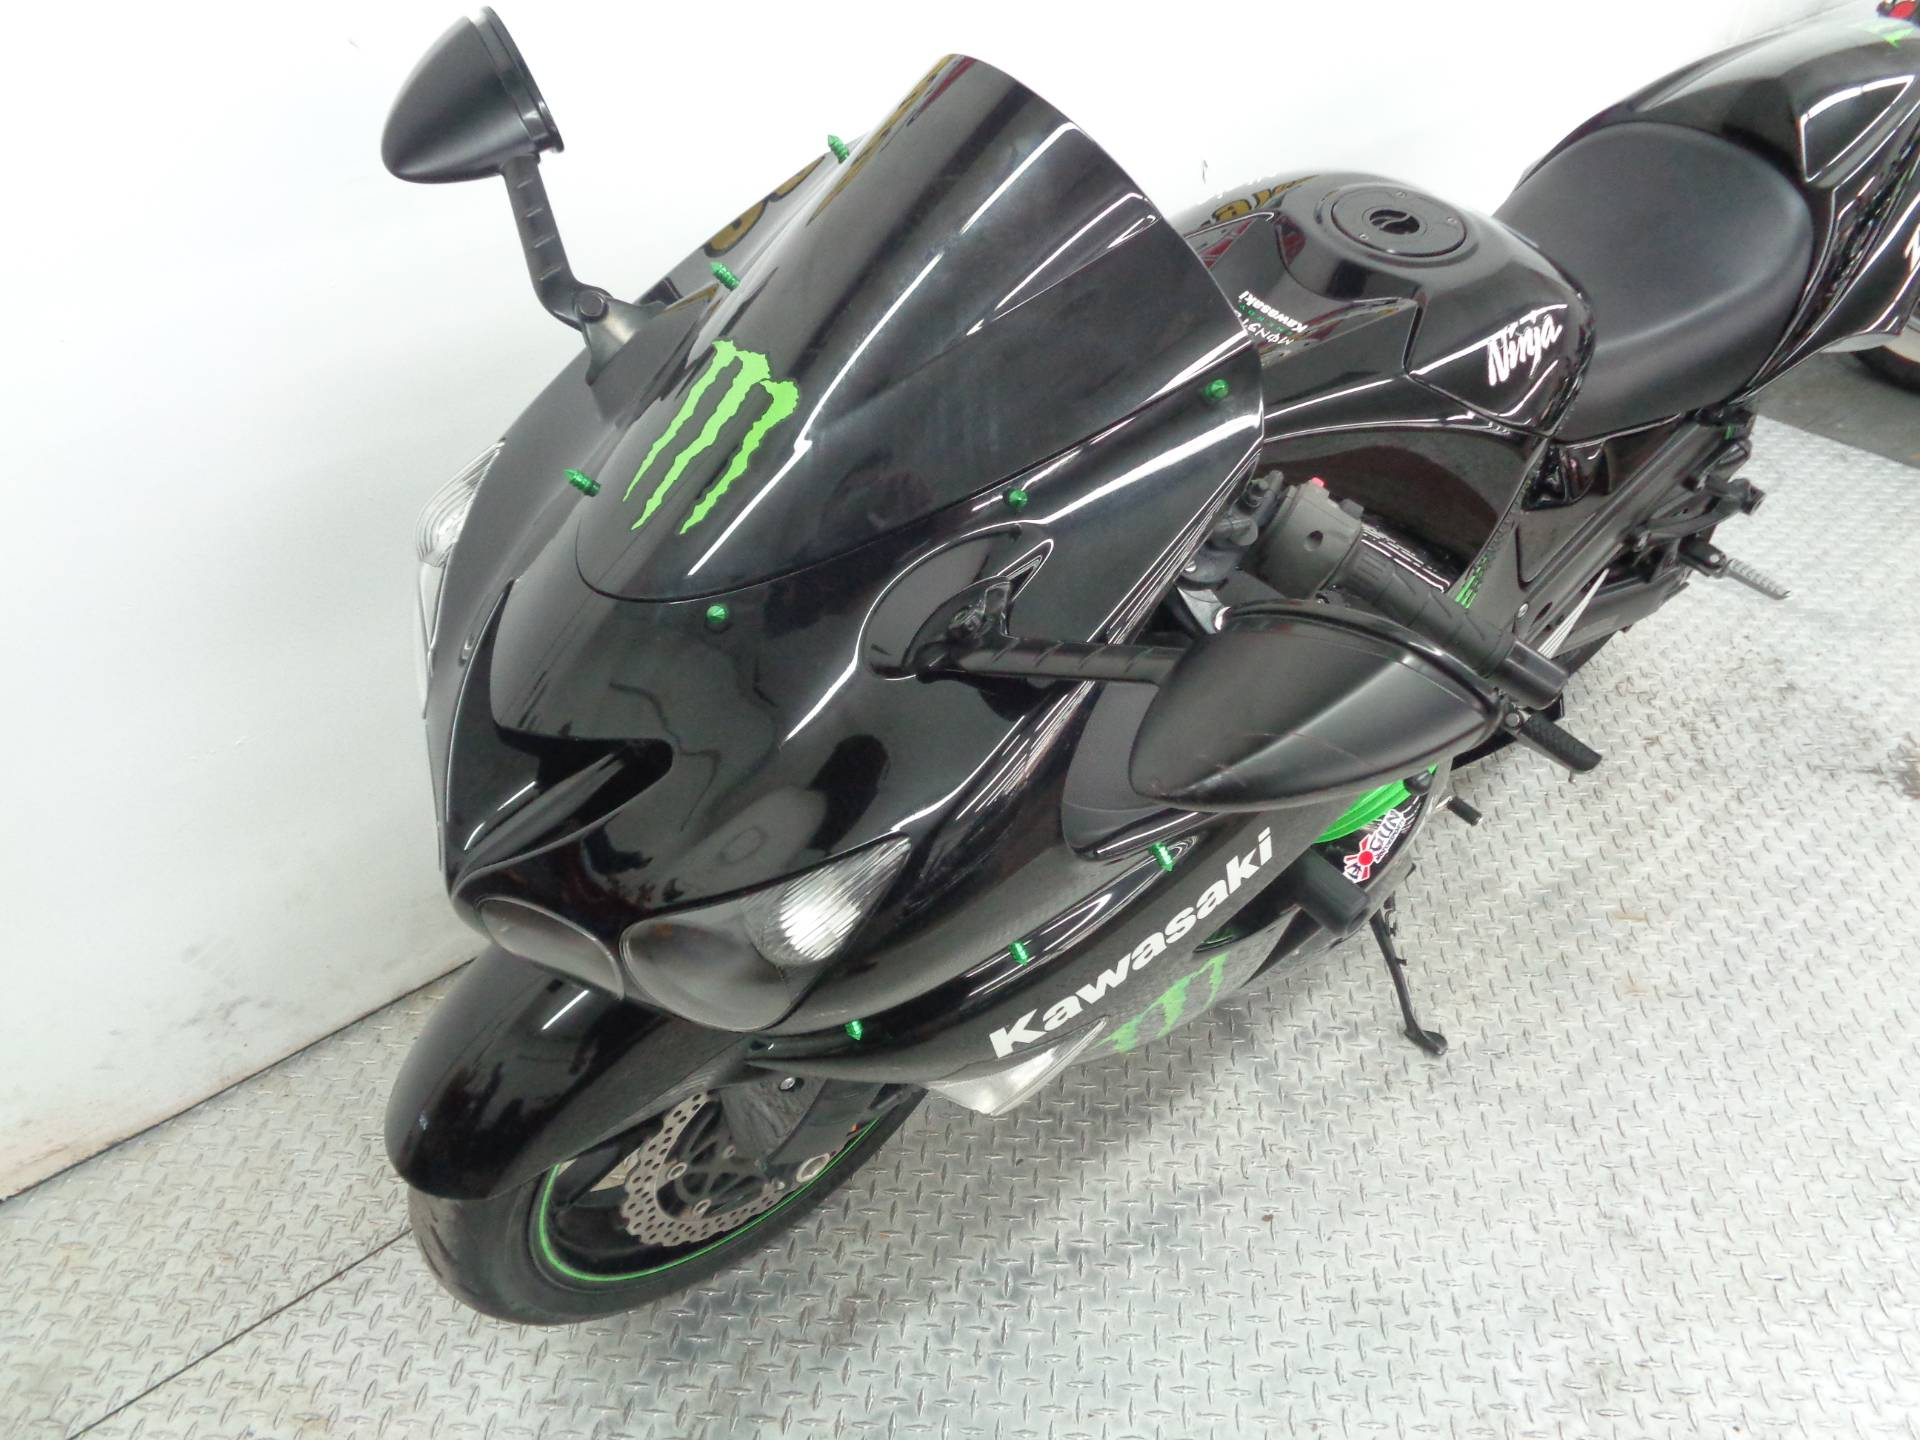 2009 Kawasaki Ninja ZX-14R Monster Energy in Tulsa, Oklahoma - Photo 6